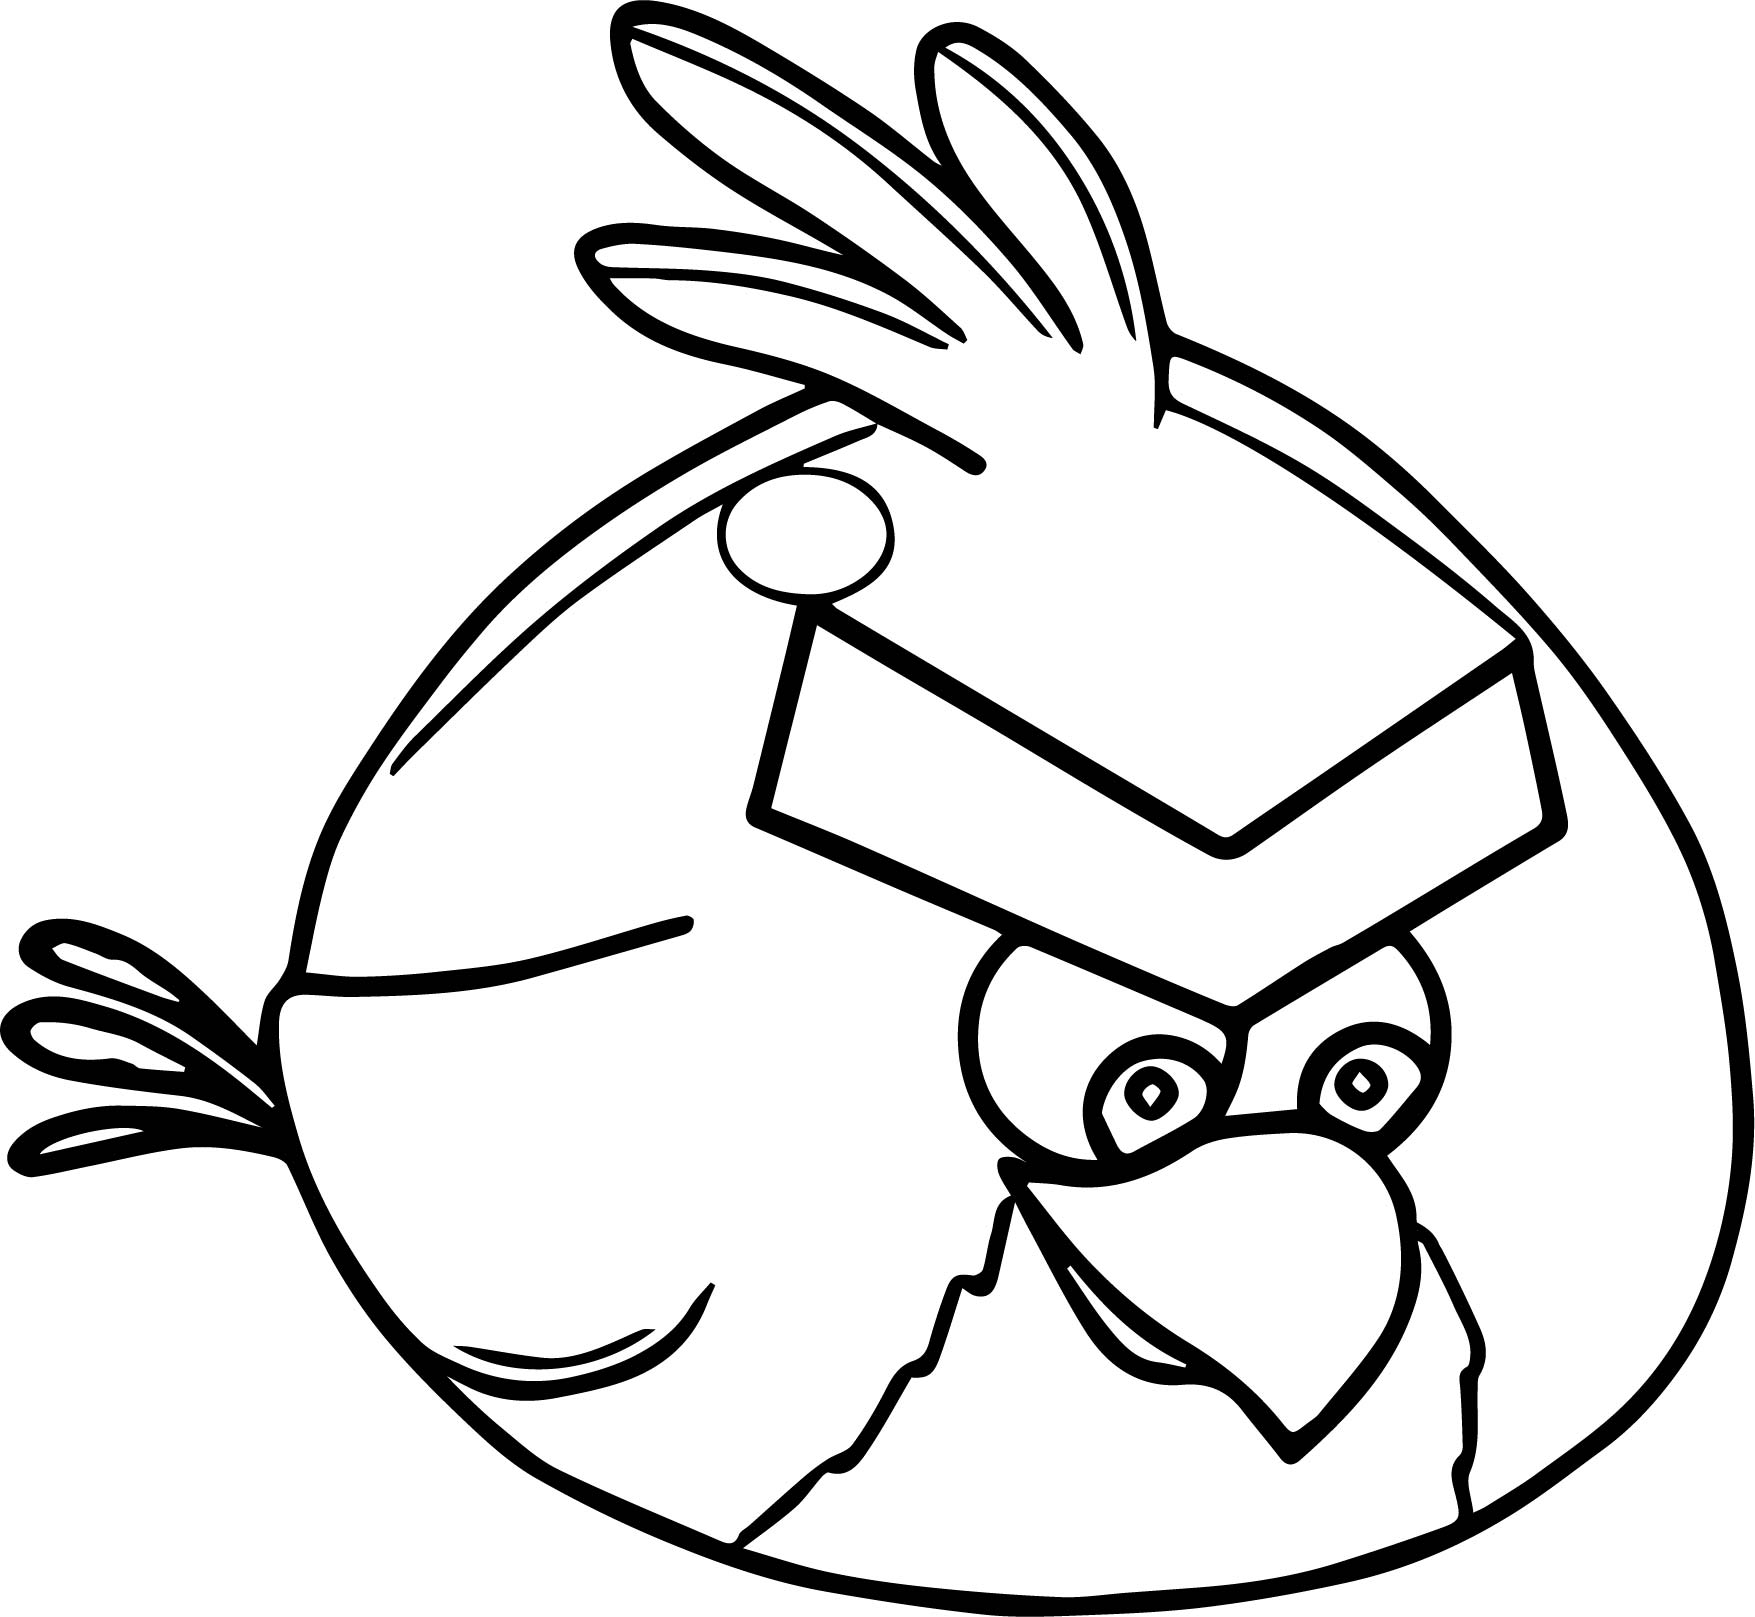 Red Animation Fly Angry Birds Coloring Page | Wecoloringpage.com